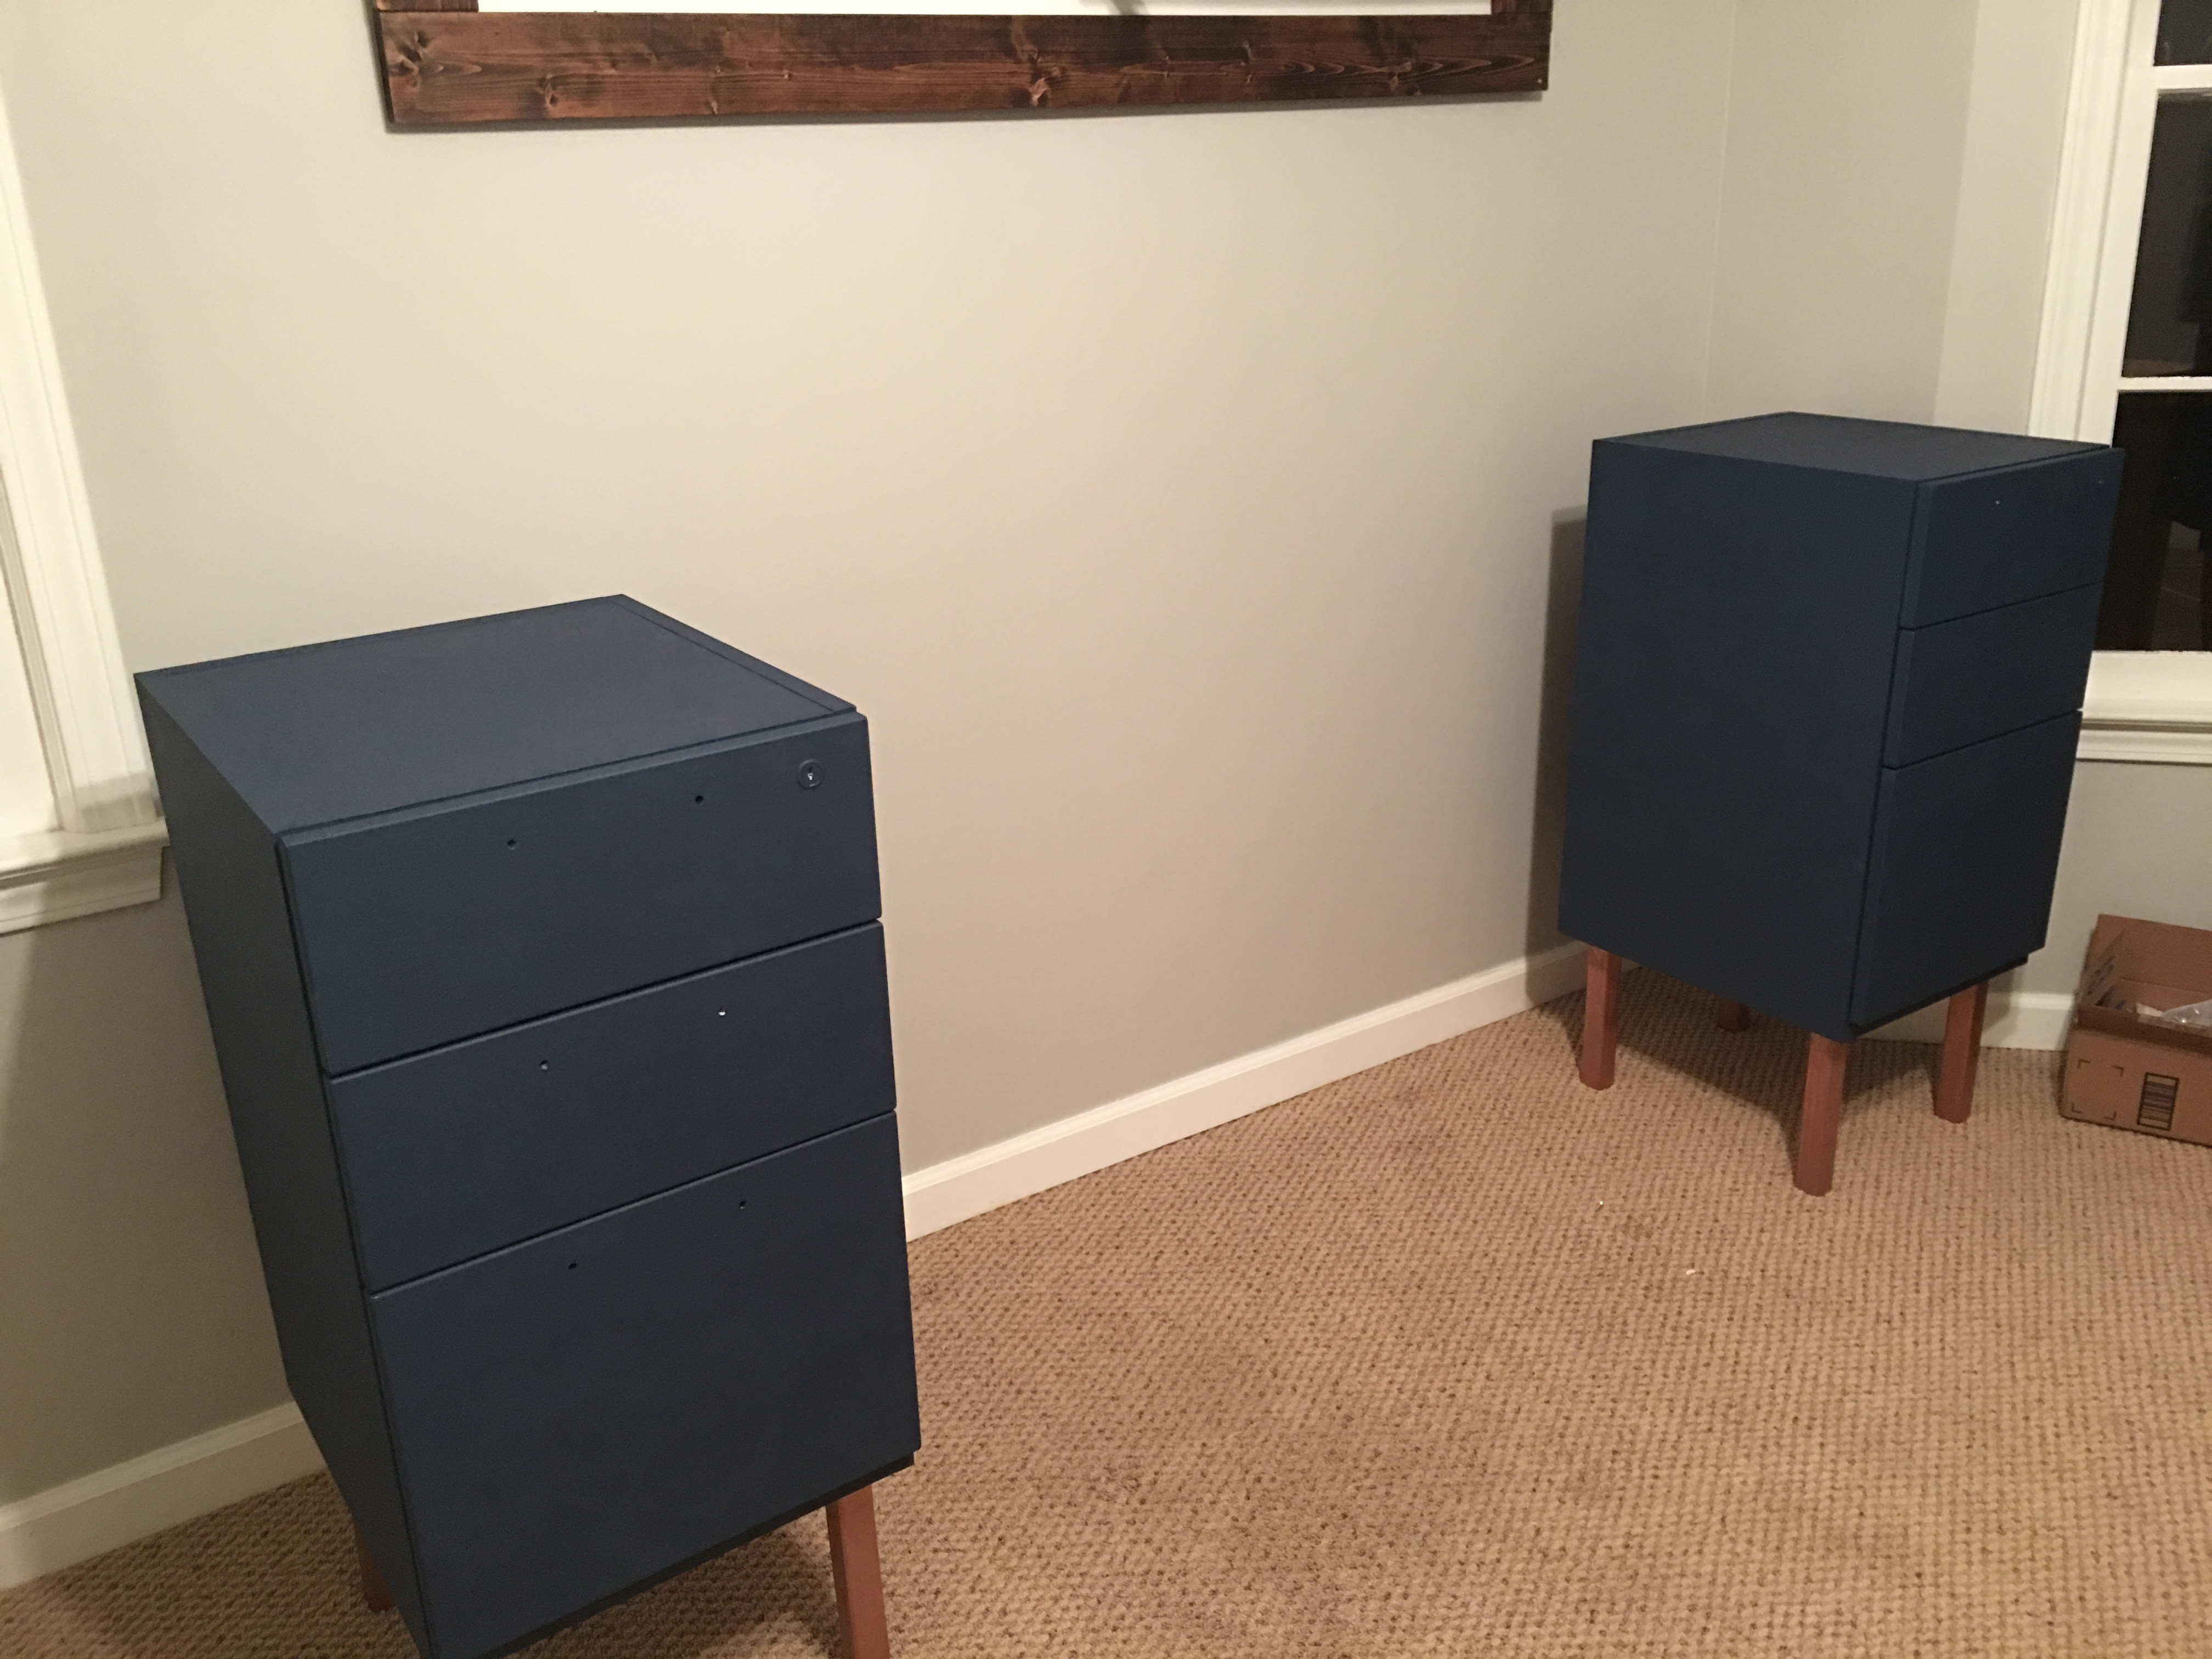 Now It Was Time To Put The File Cabinets Back Together And Move Them Into  My Office.